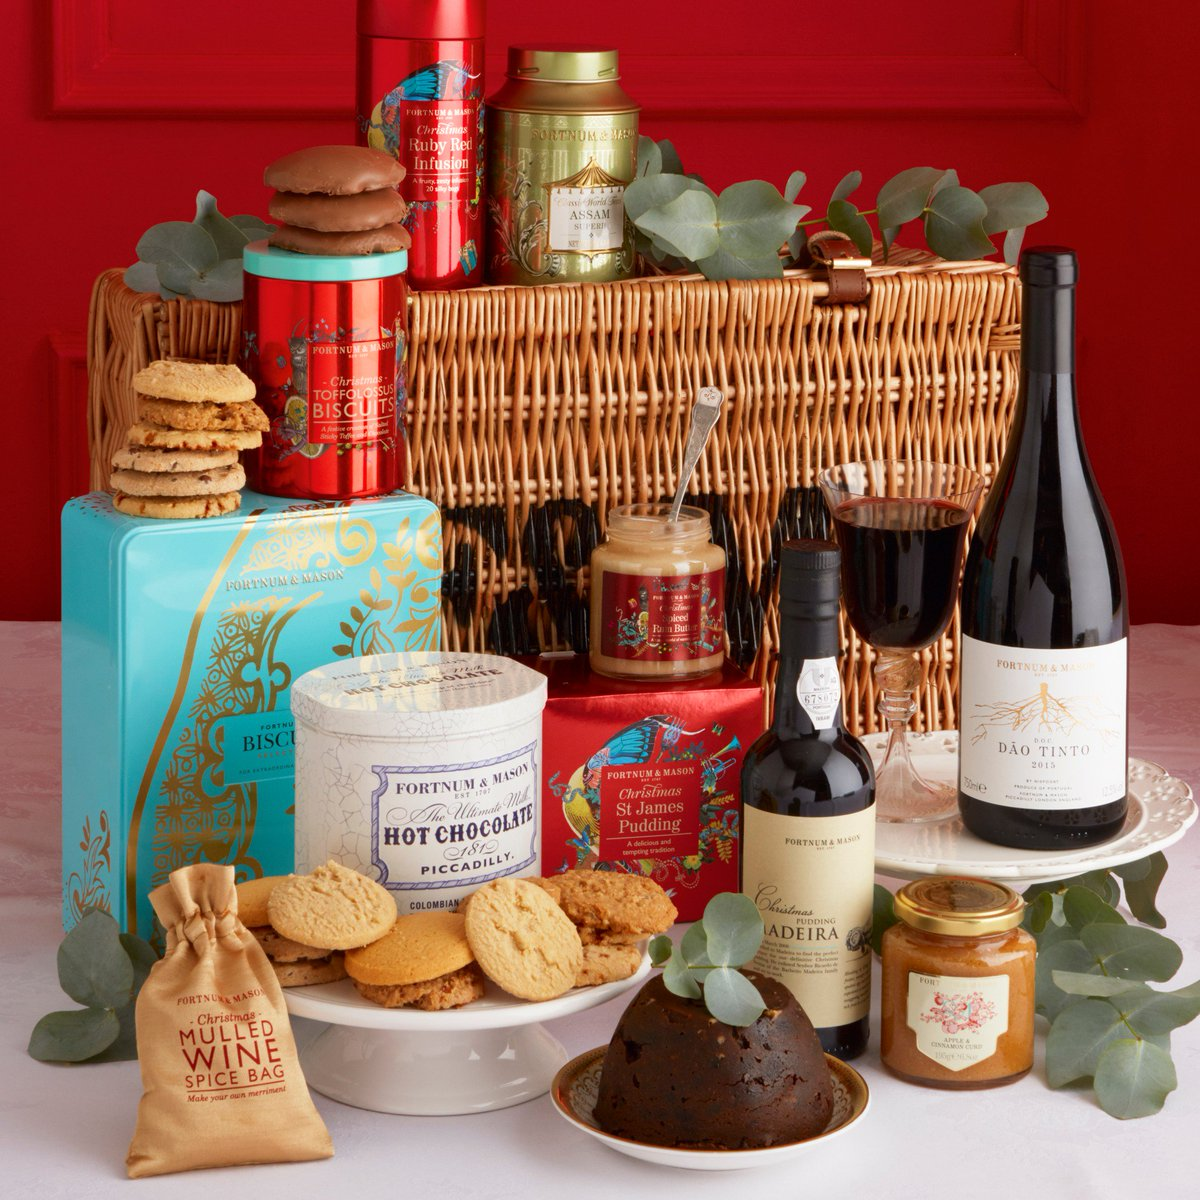 Fortnum Mason On Twitter New Laden With Comforting Creations